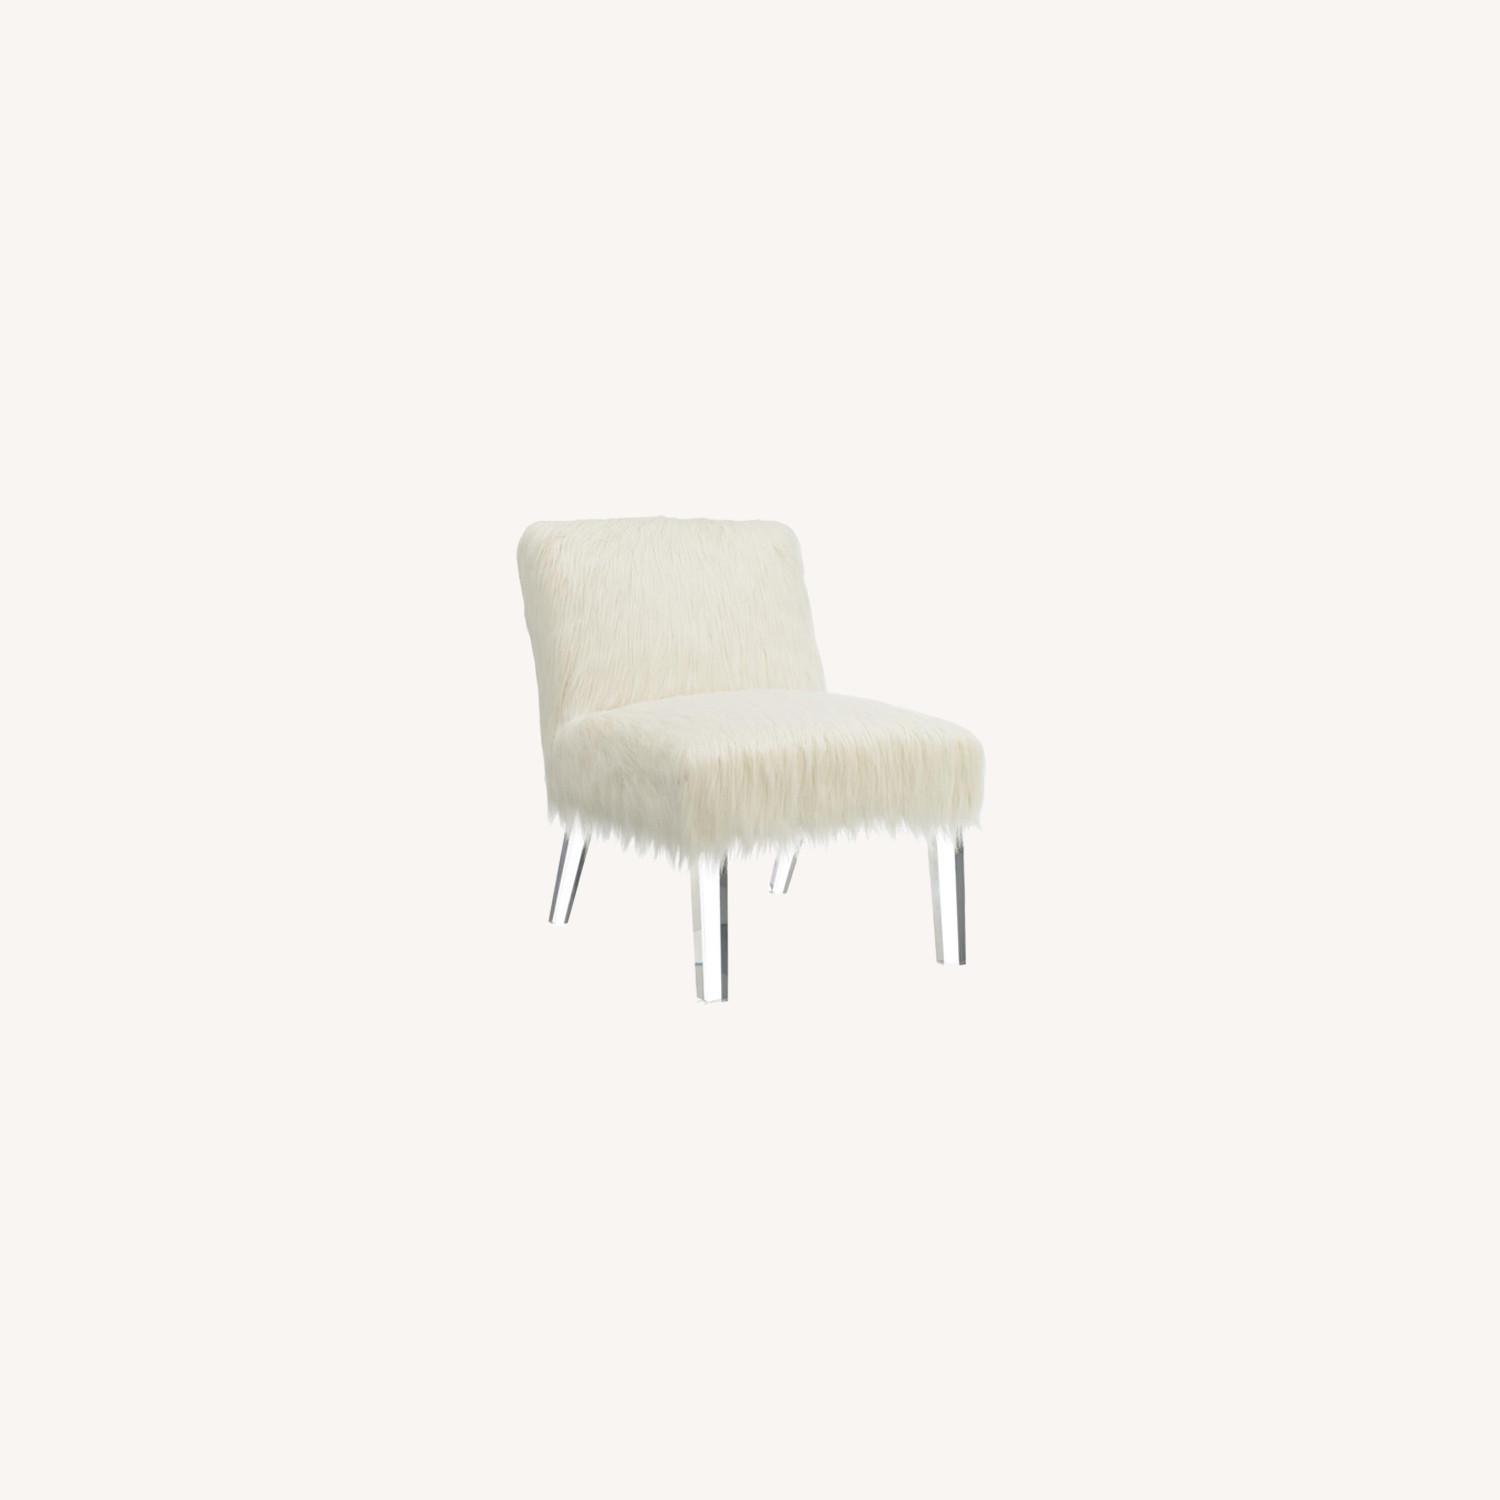 Accent Chair In Glamorous White Faux Sheepskin - image-5